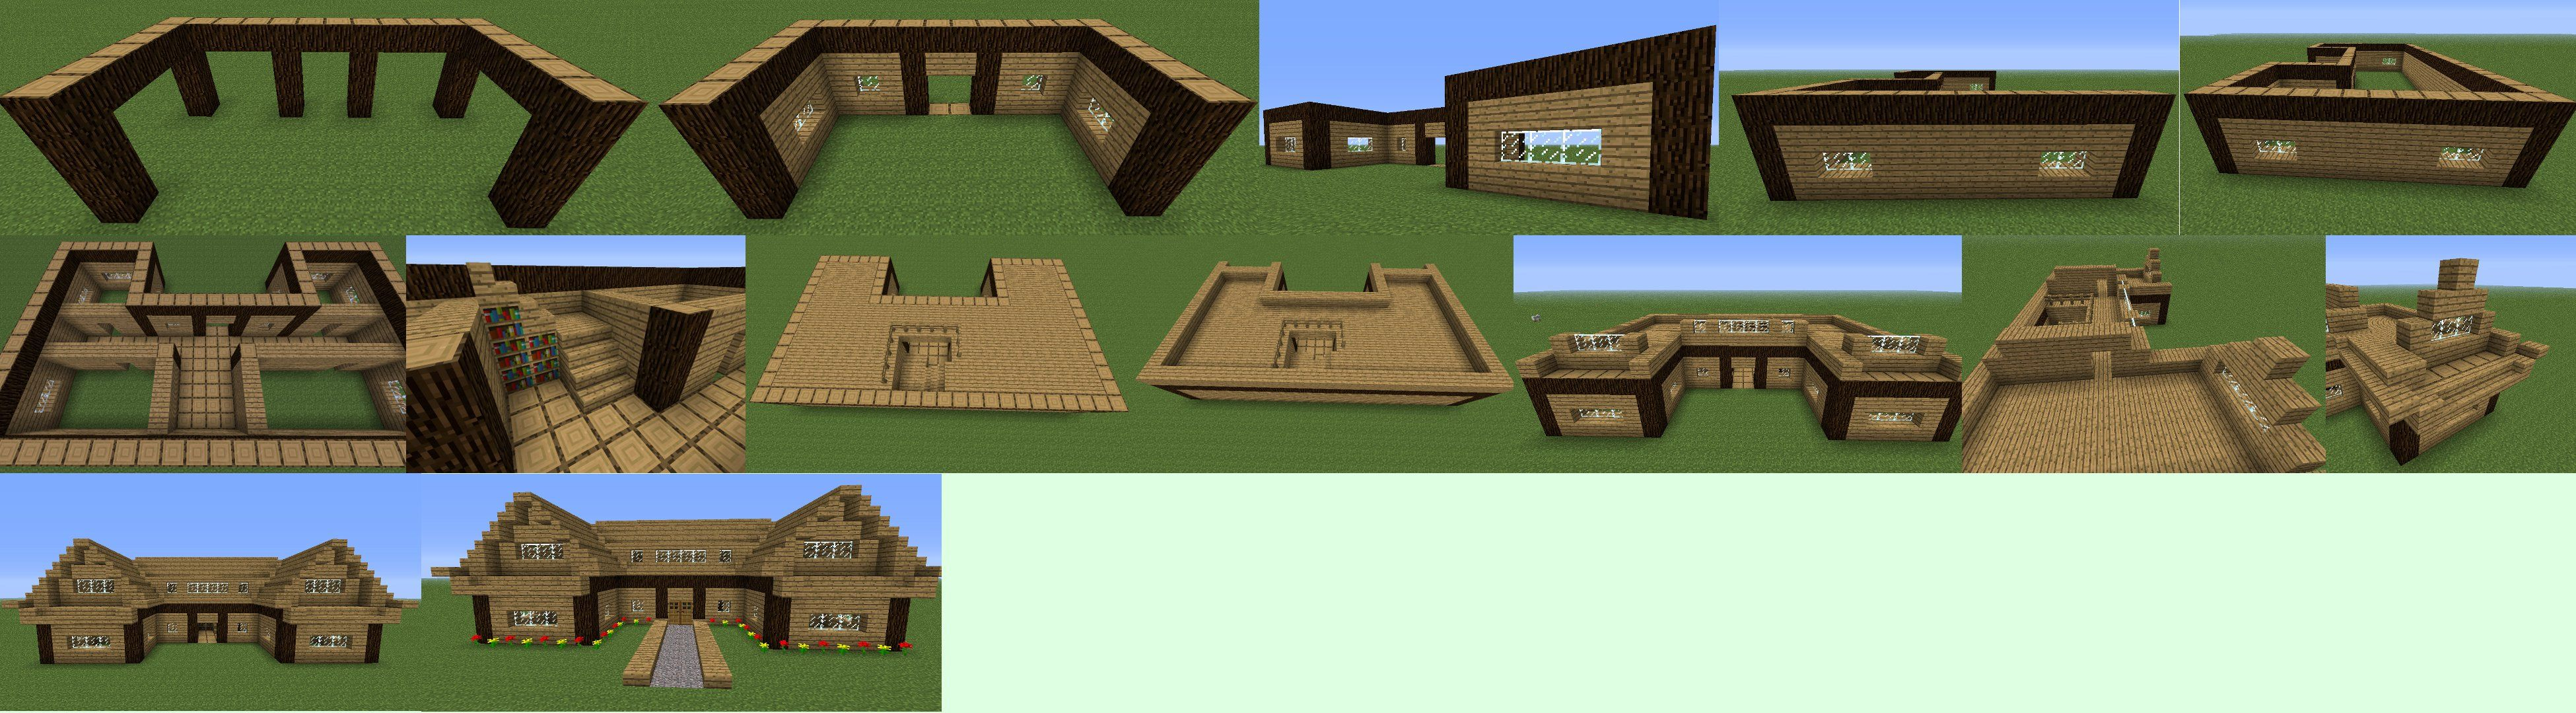 Minecraft Houses Step By Step Google Search Minecraft Farm